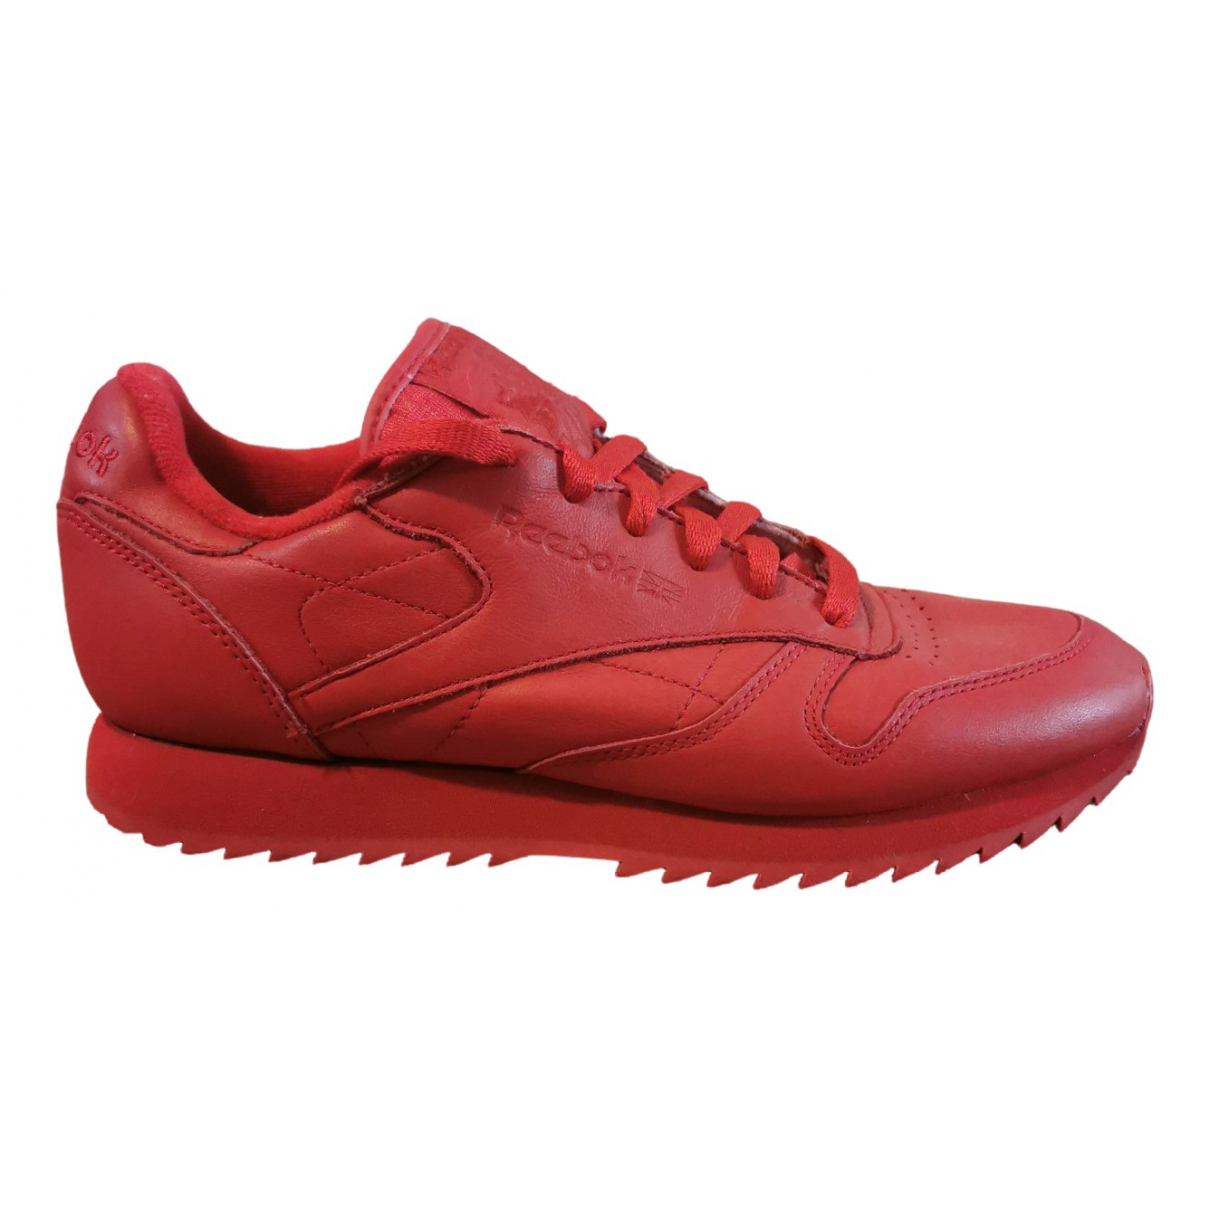 Reebok N Red Leather Trainers for Women 37.5 EU